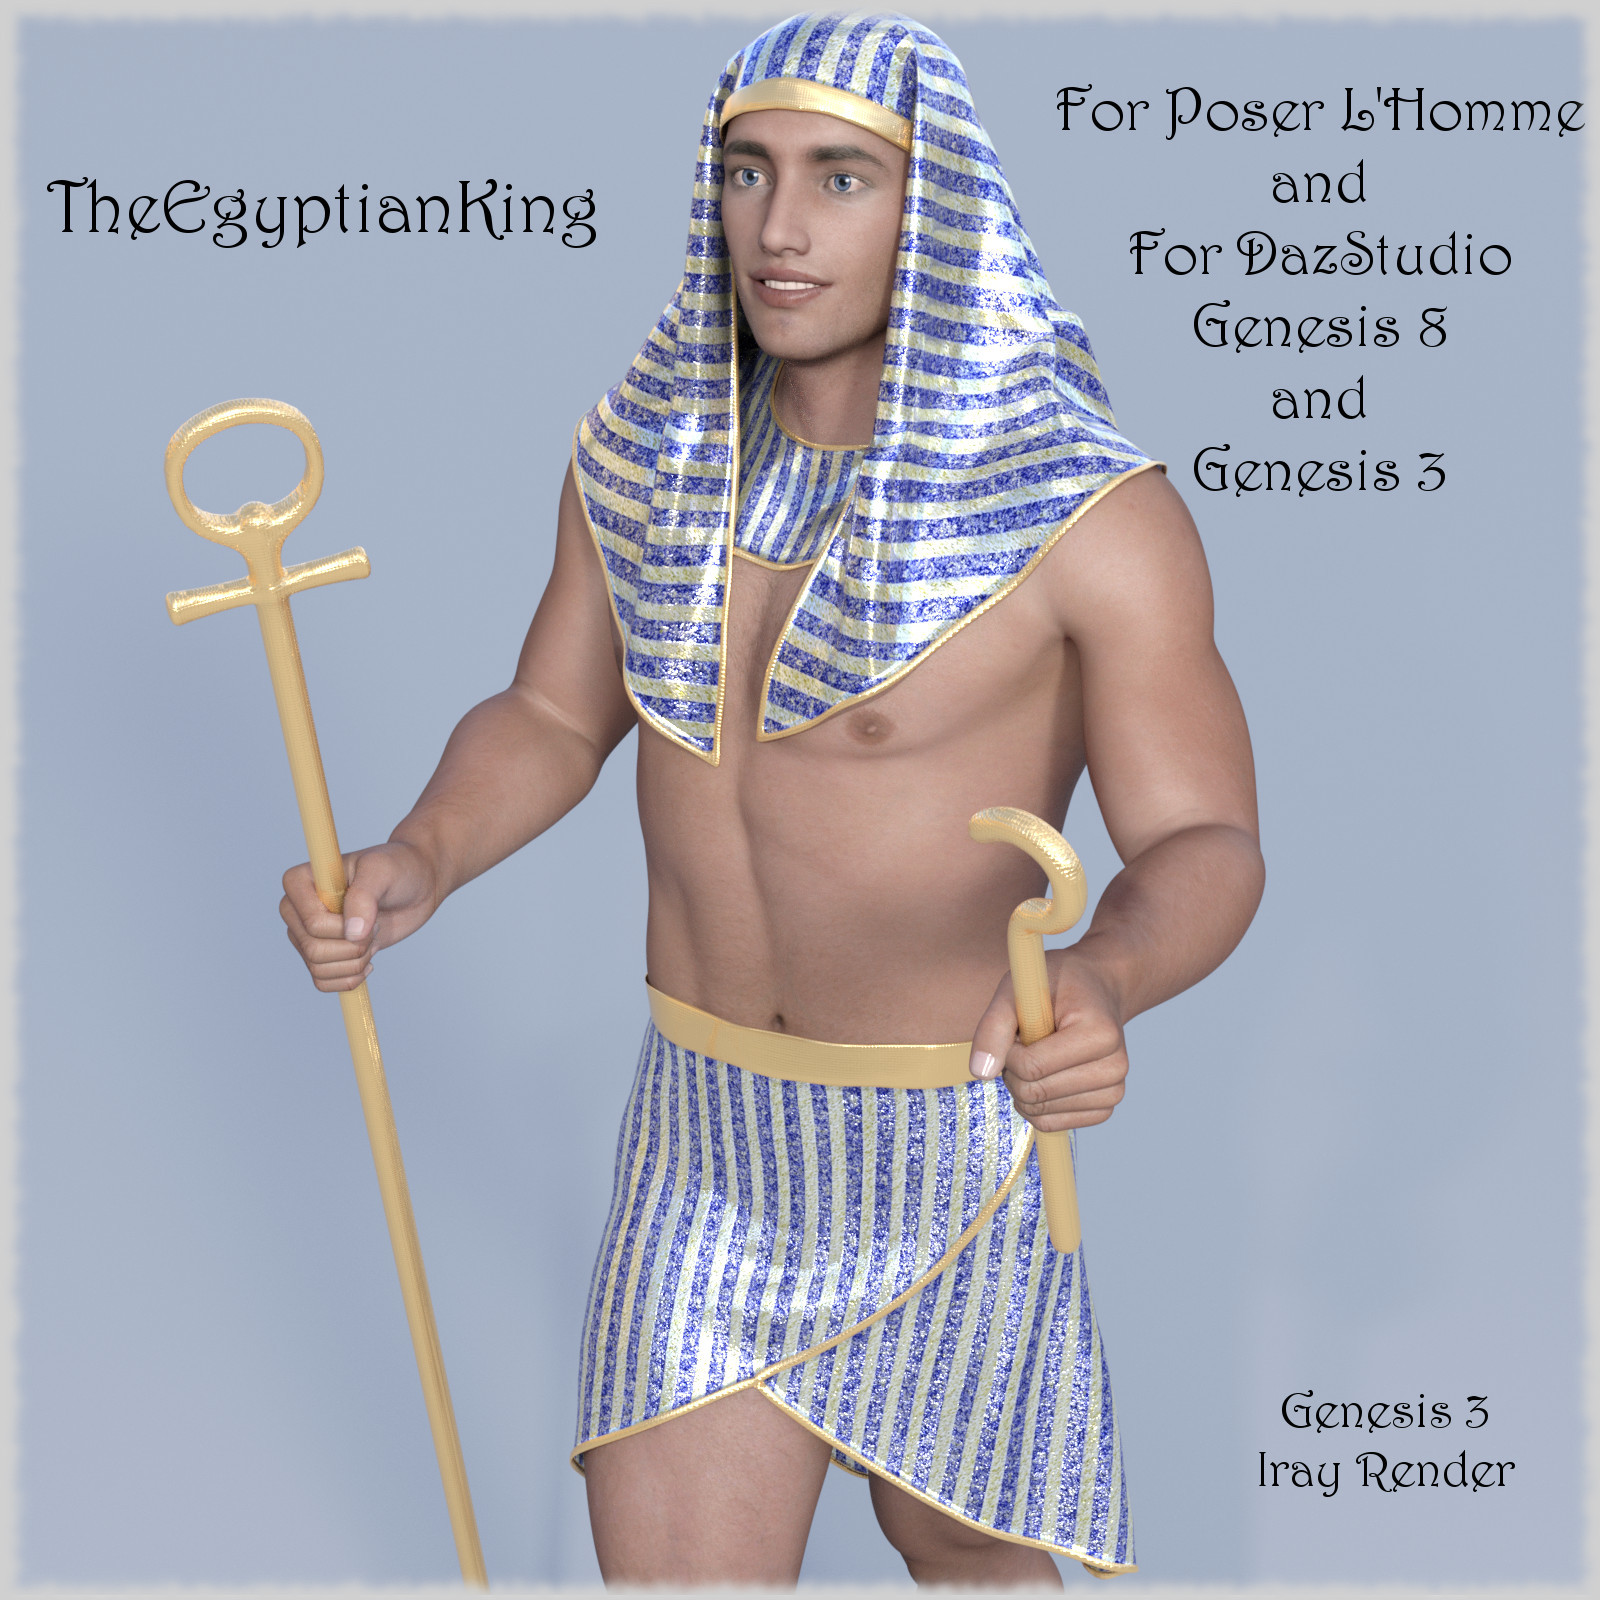 The Egyptian King  - Dynamic and dForce for L'Homme, Genesis 8 and Genesis 3 by jroulin